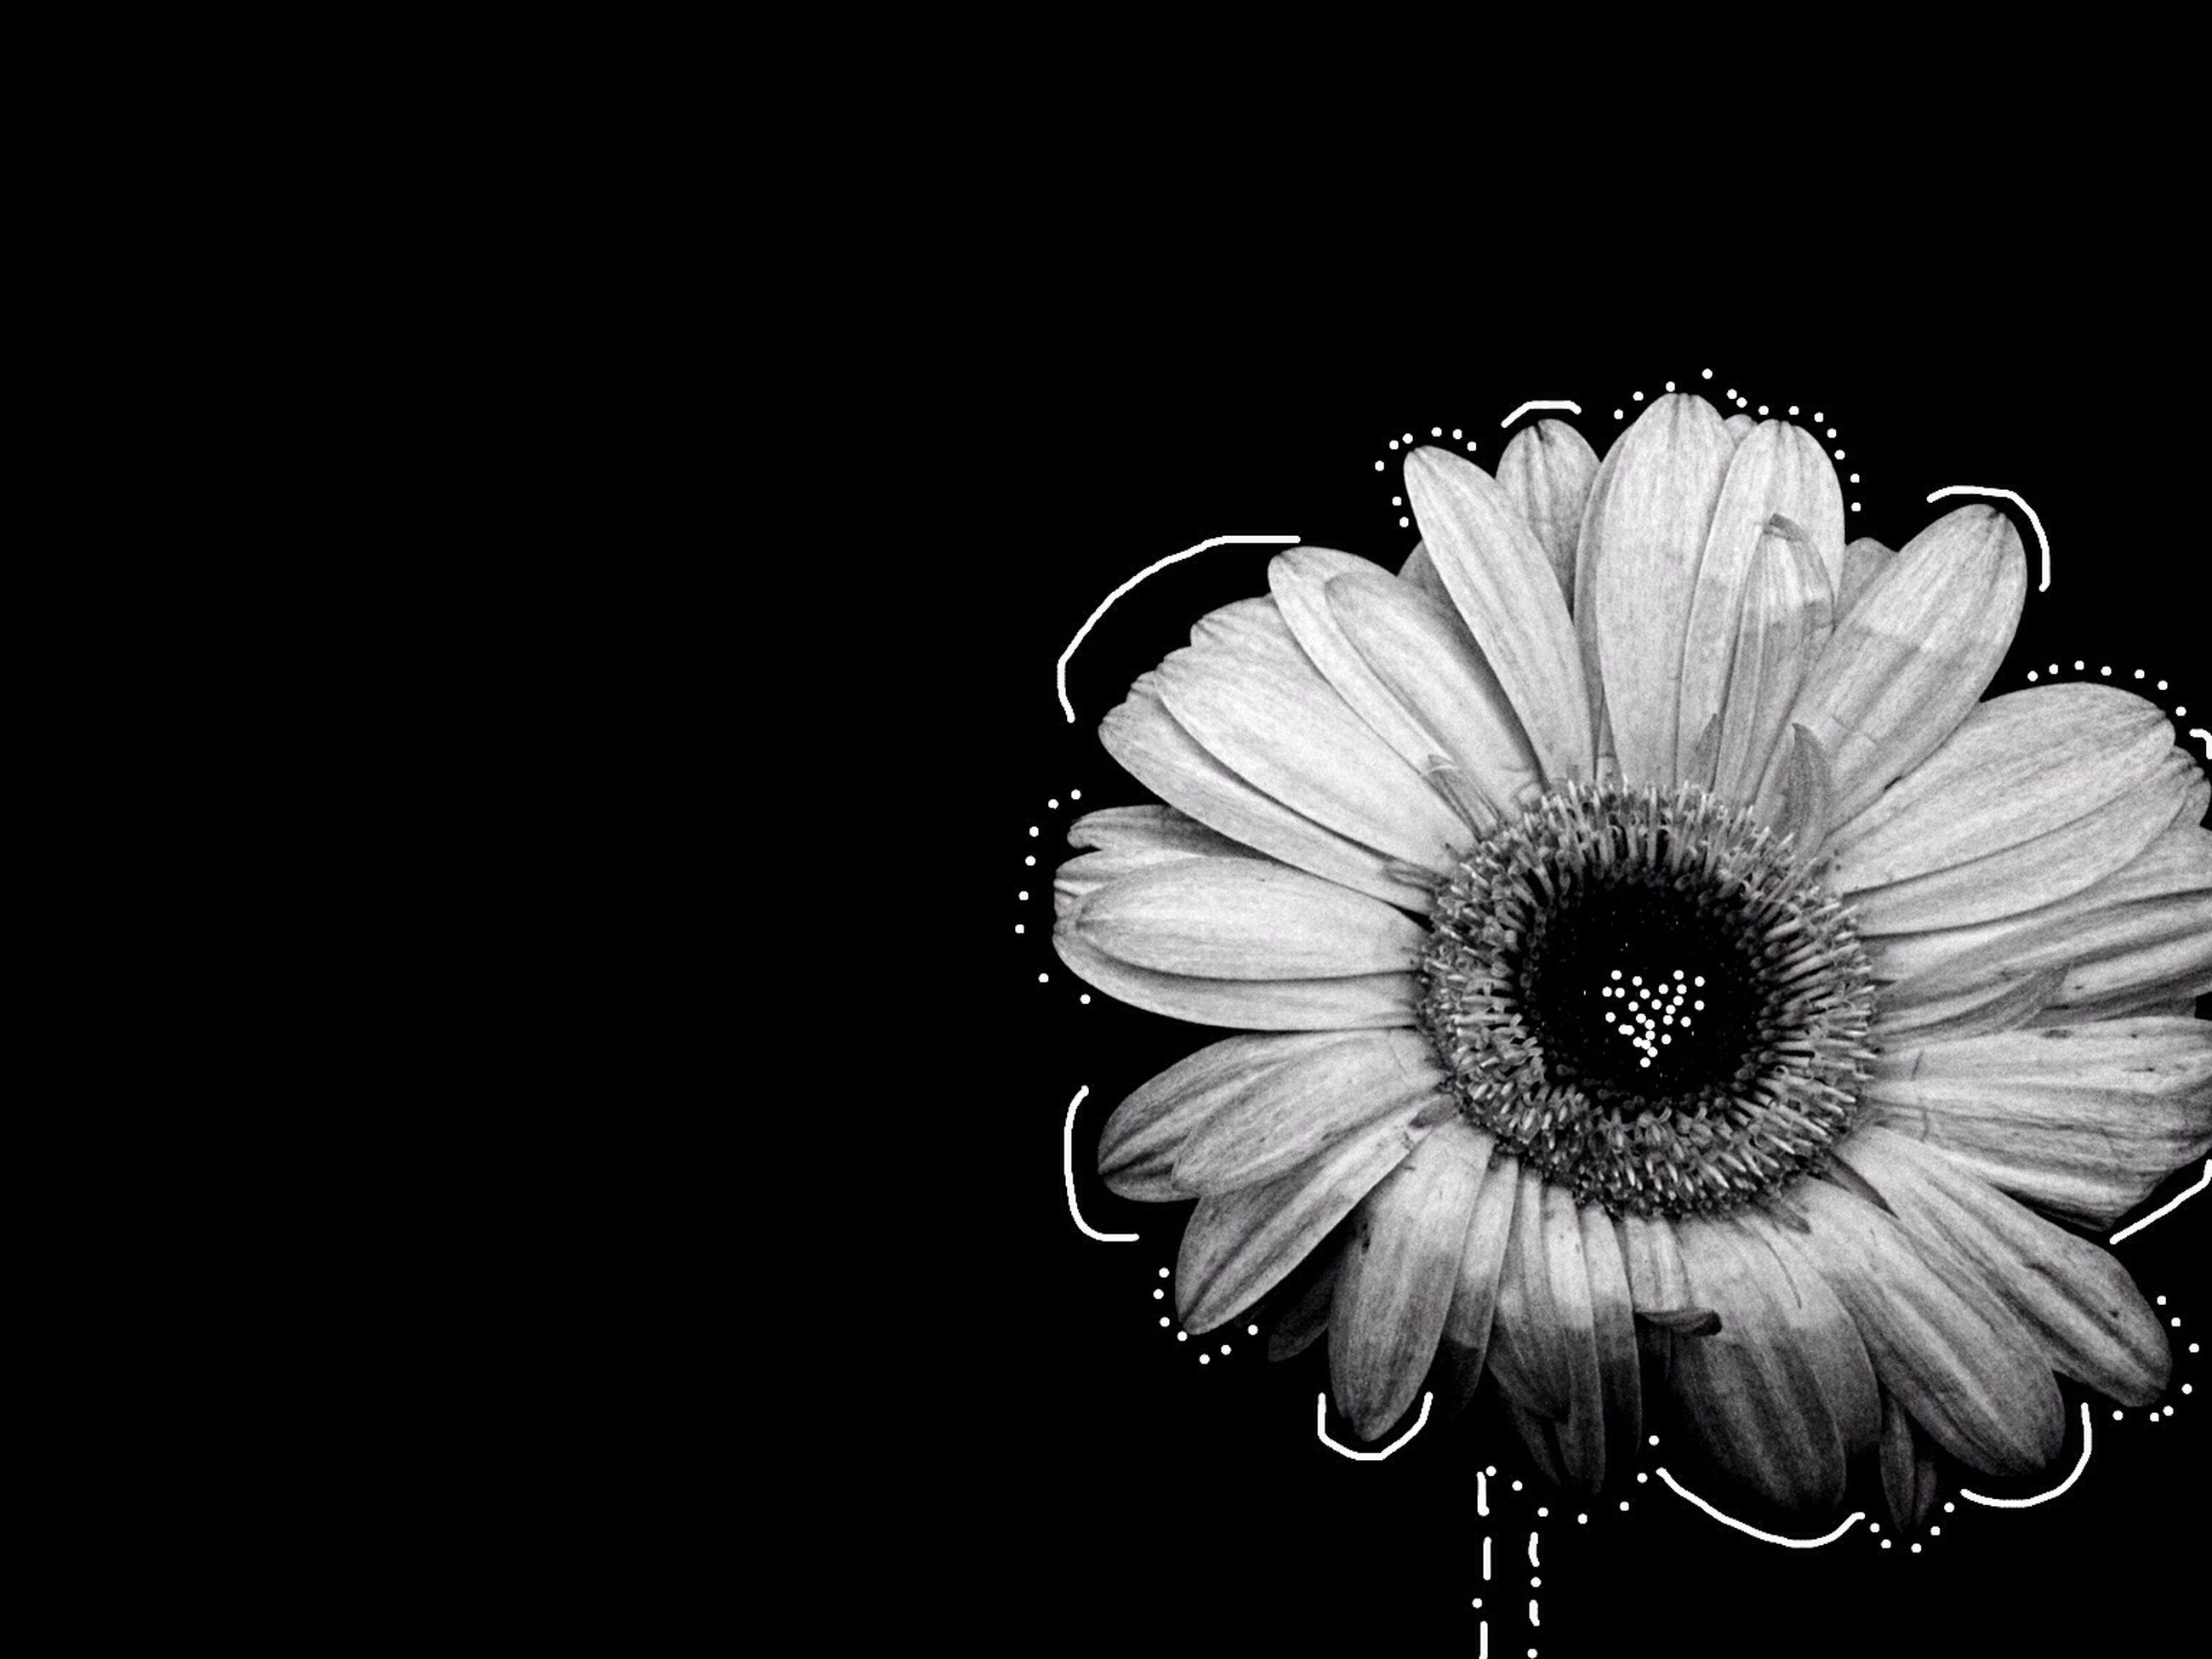 studio shot, black background, copy space, flower, close-up, fragility, flower head, petal, single flower, no people, cut out, freshness, beauty in nature, night, clear sky, single object, nature, pollen, simplicity, white color